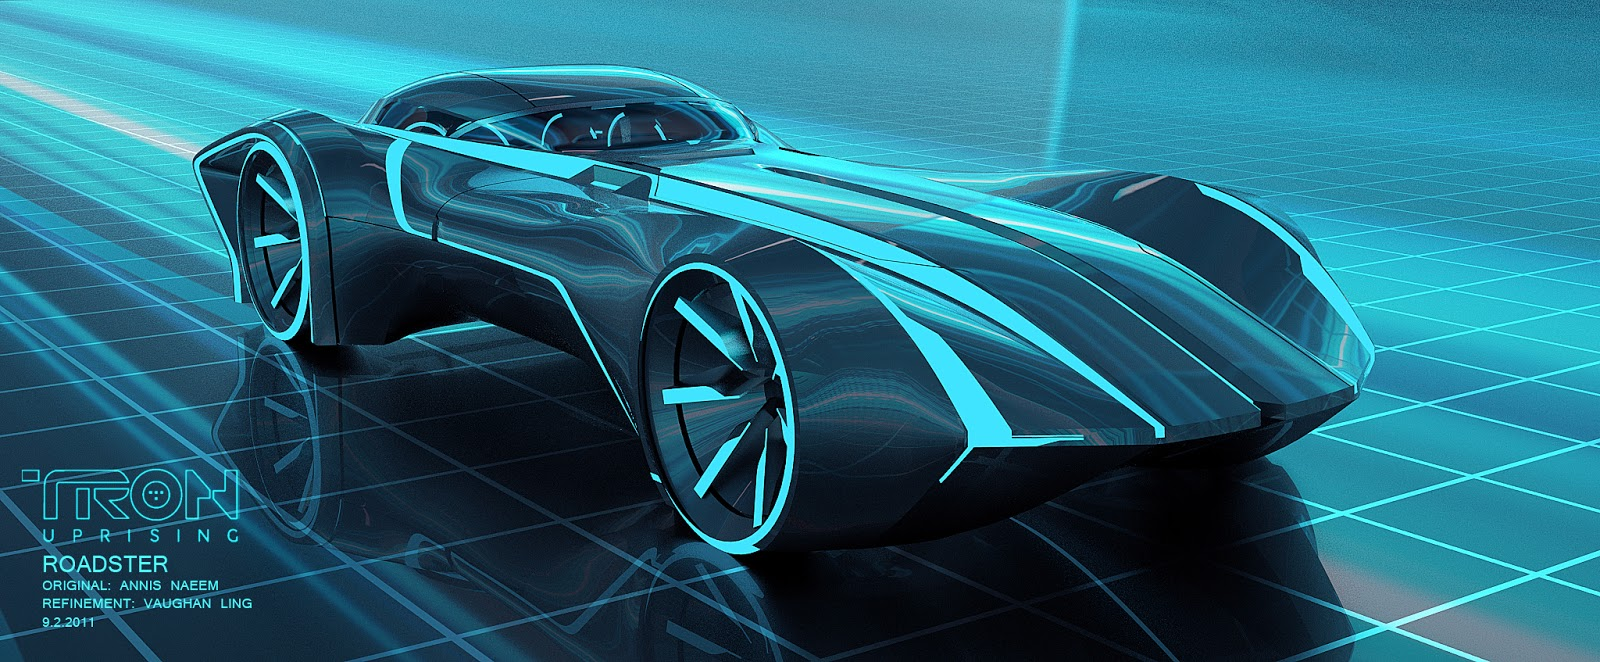 Tron uprising roadster